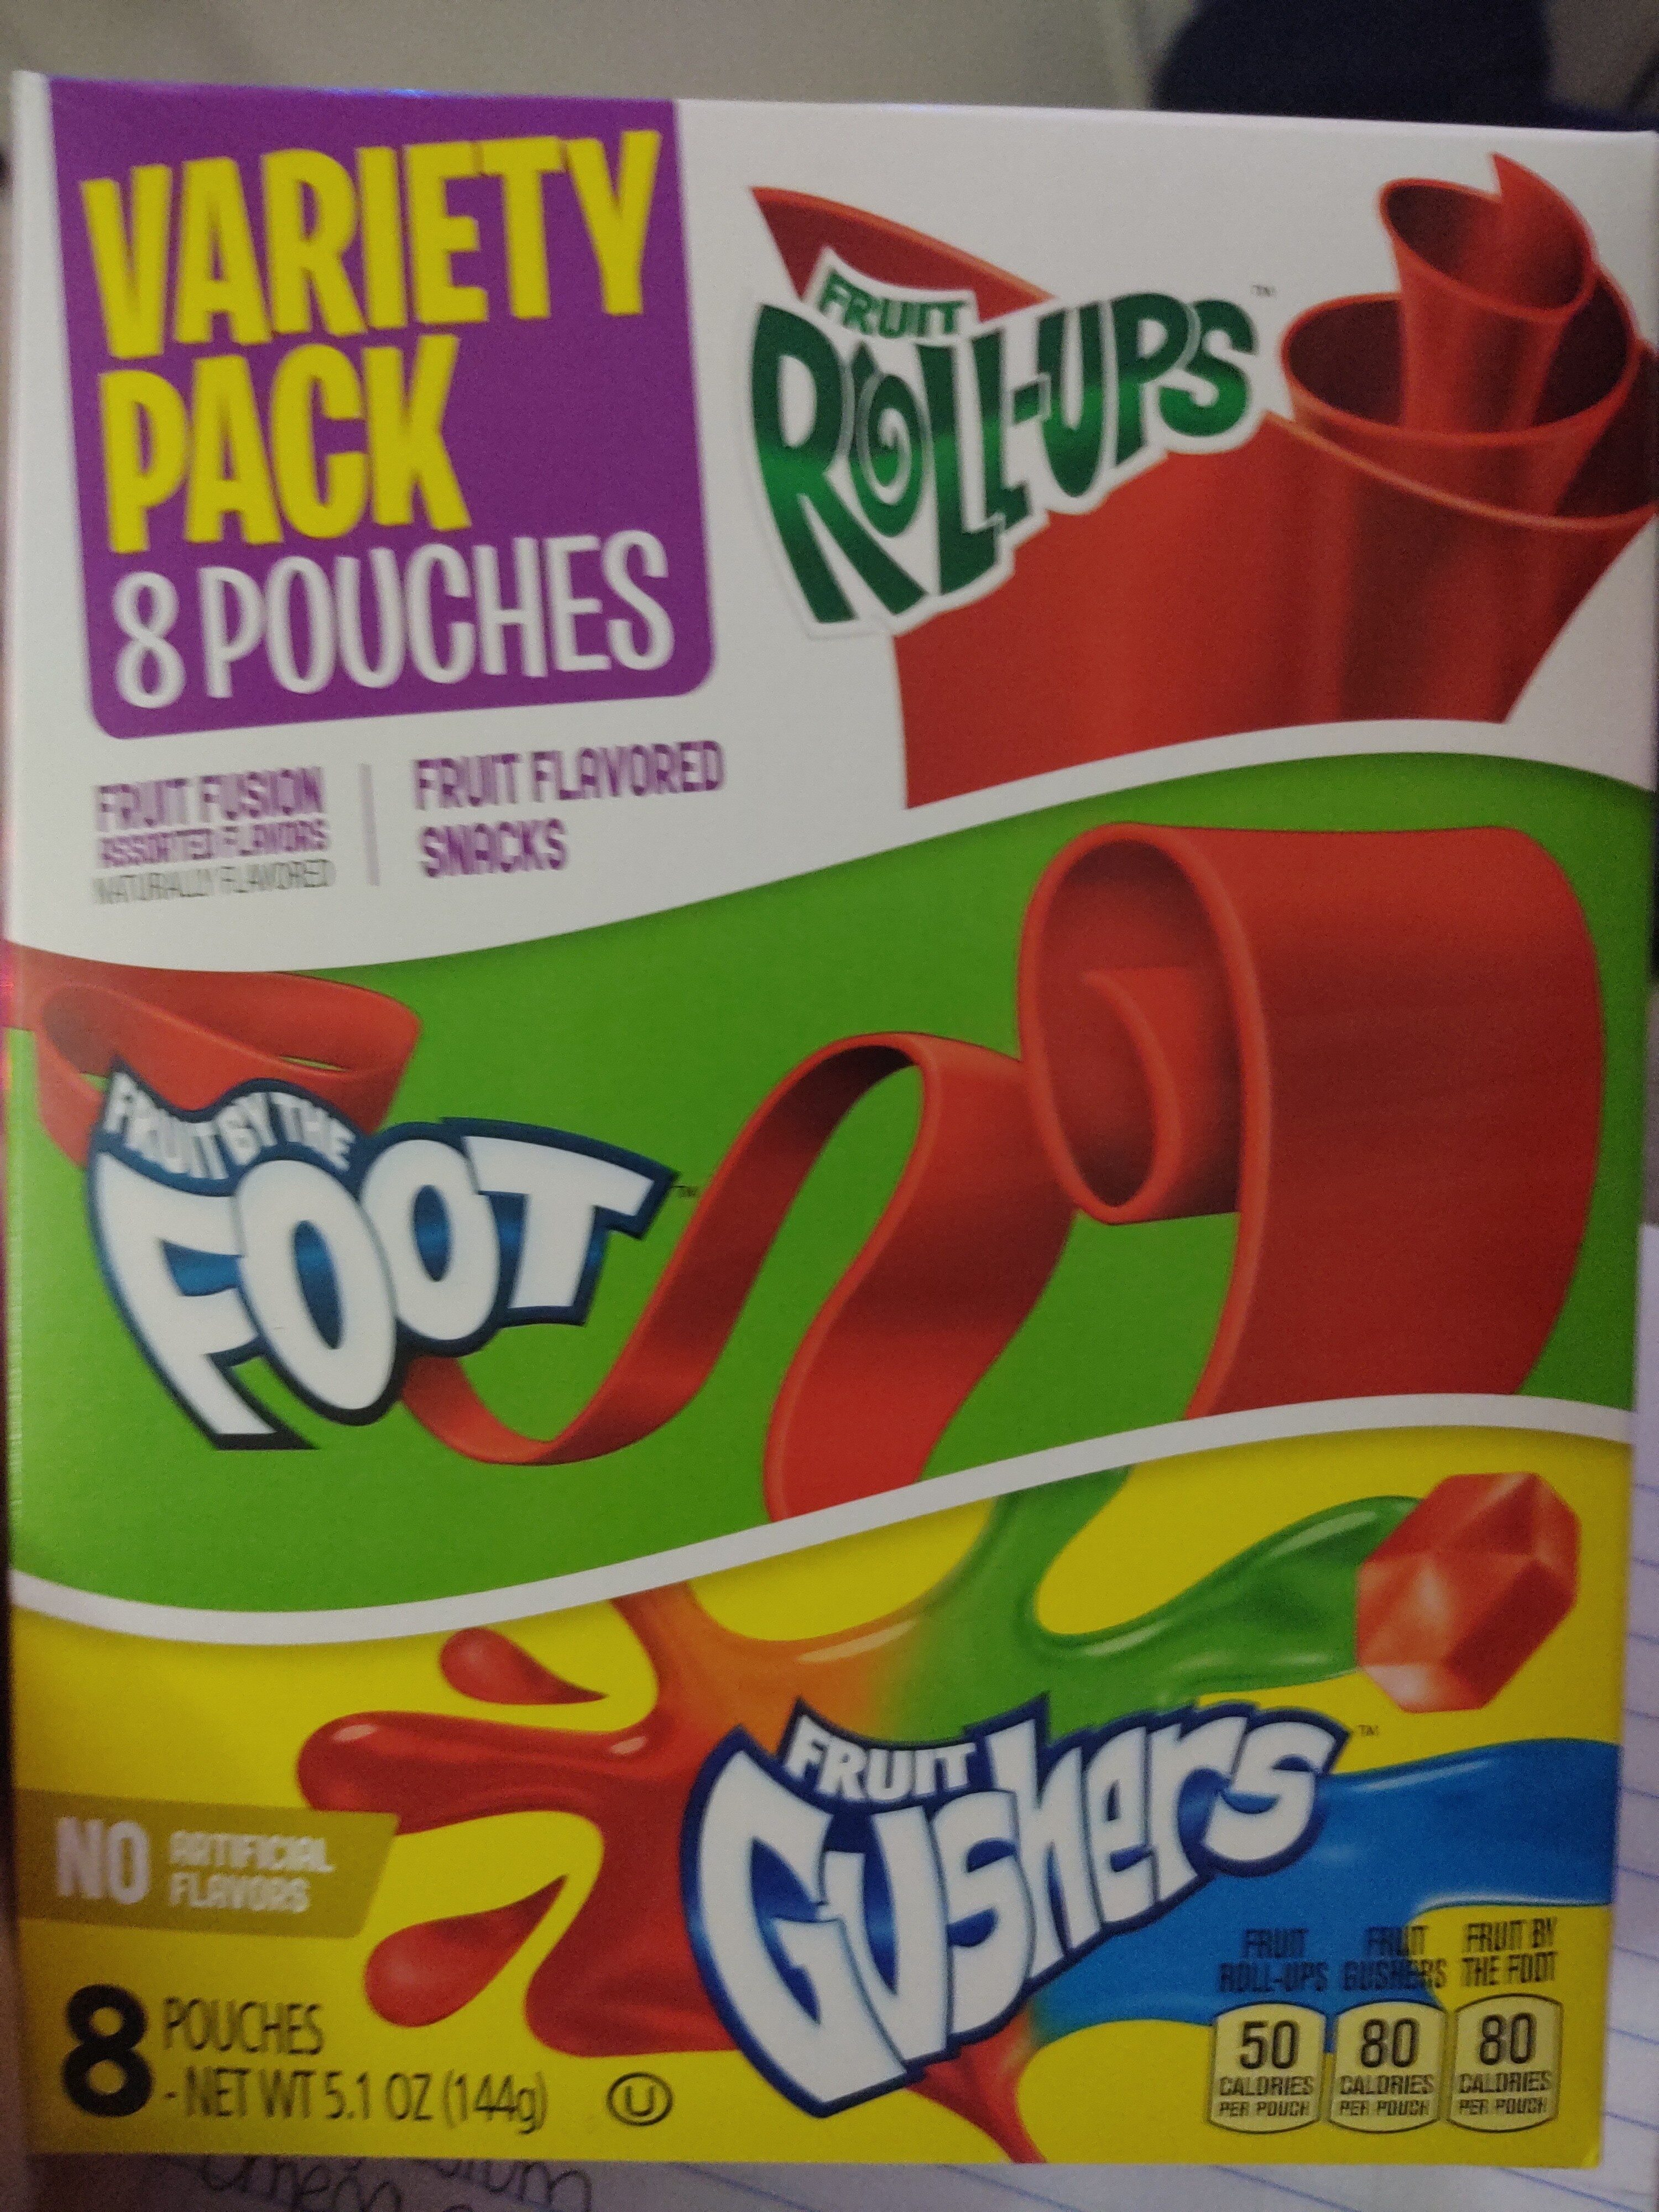 fruit rollup variety pack - Product - en